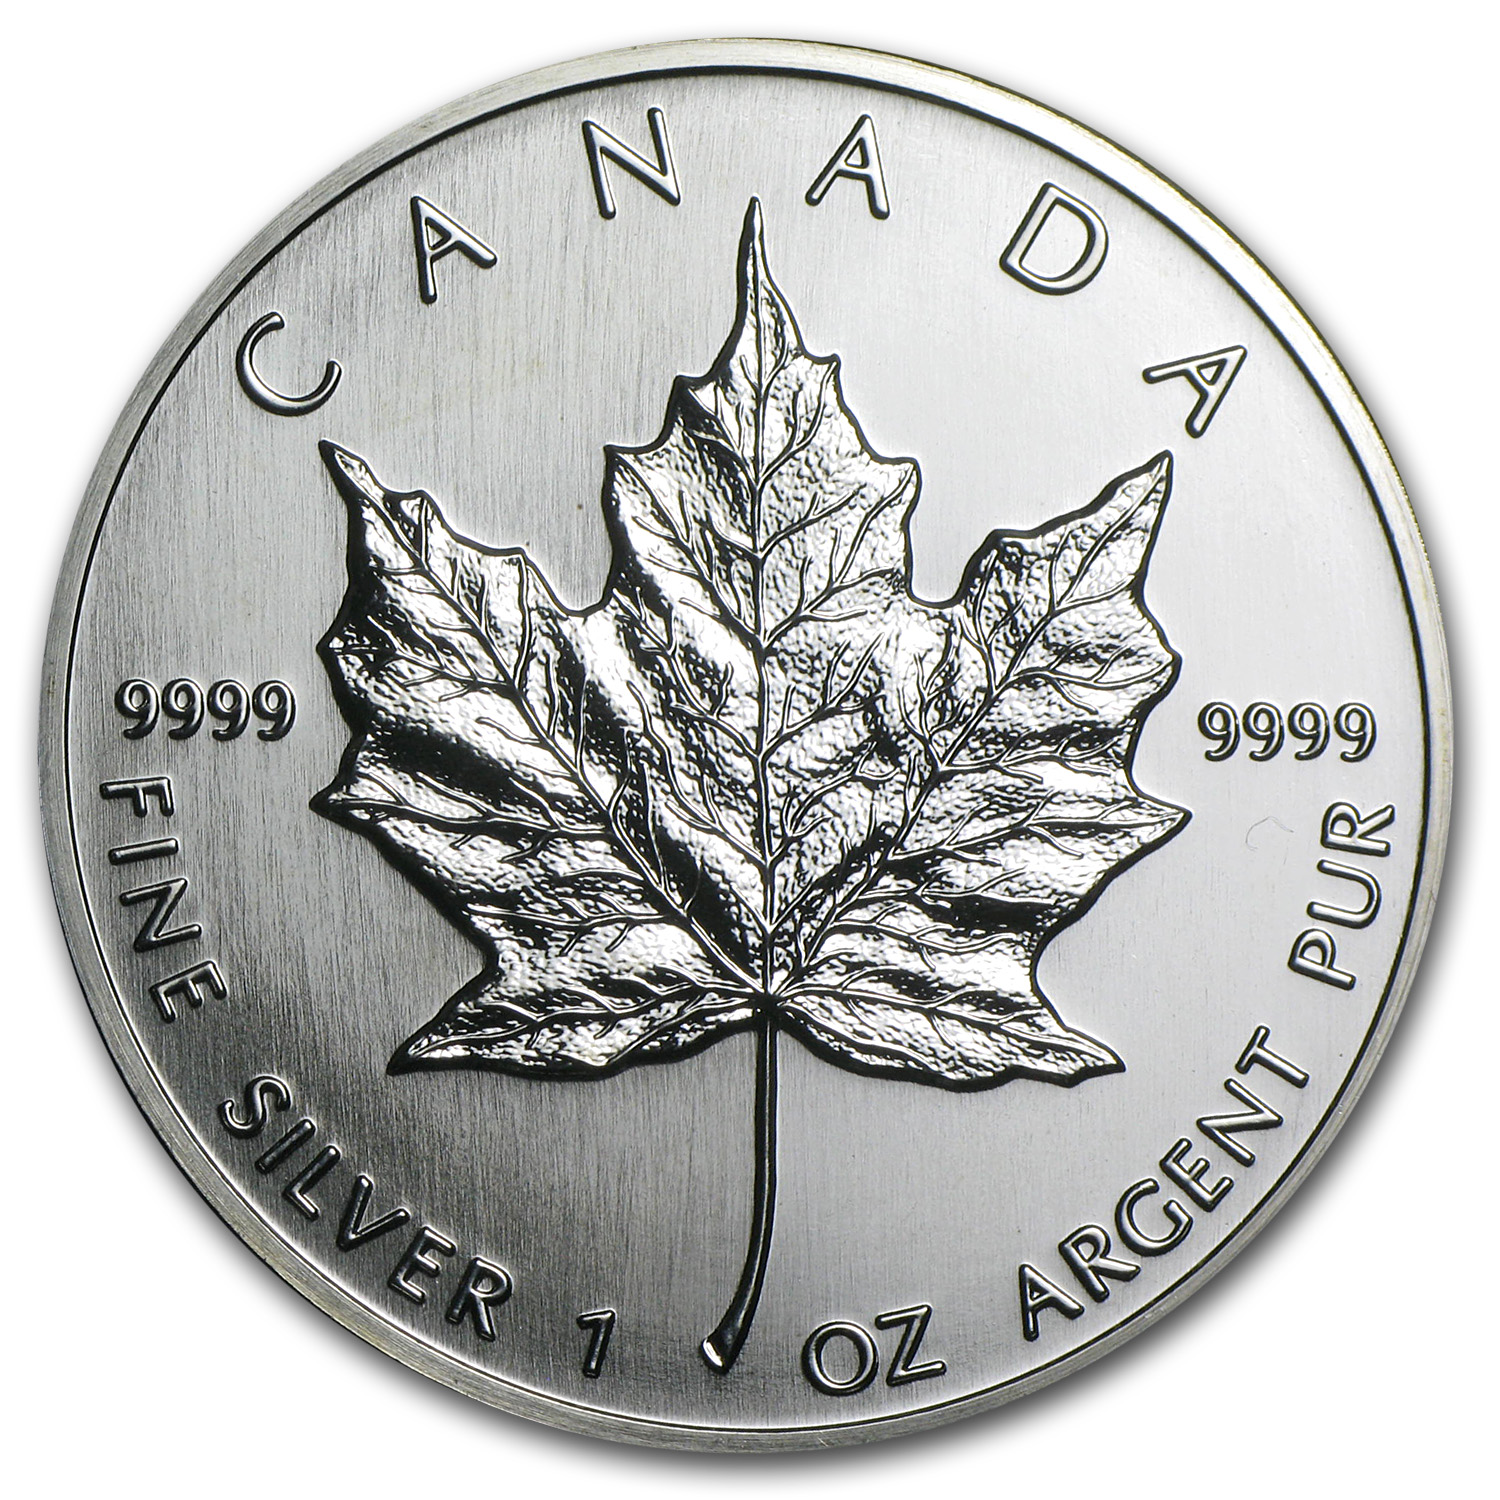 1990 Canada 1 oz Silver Maple Leaf BU